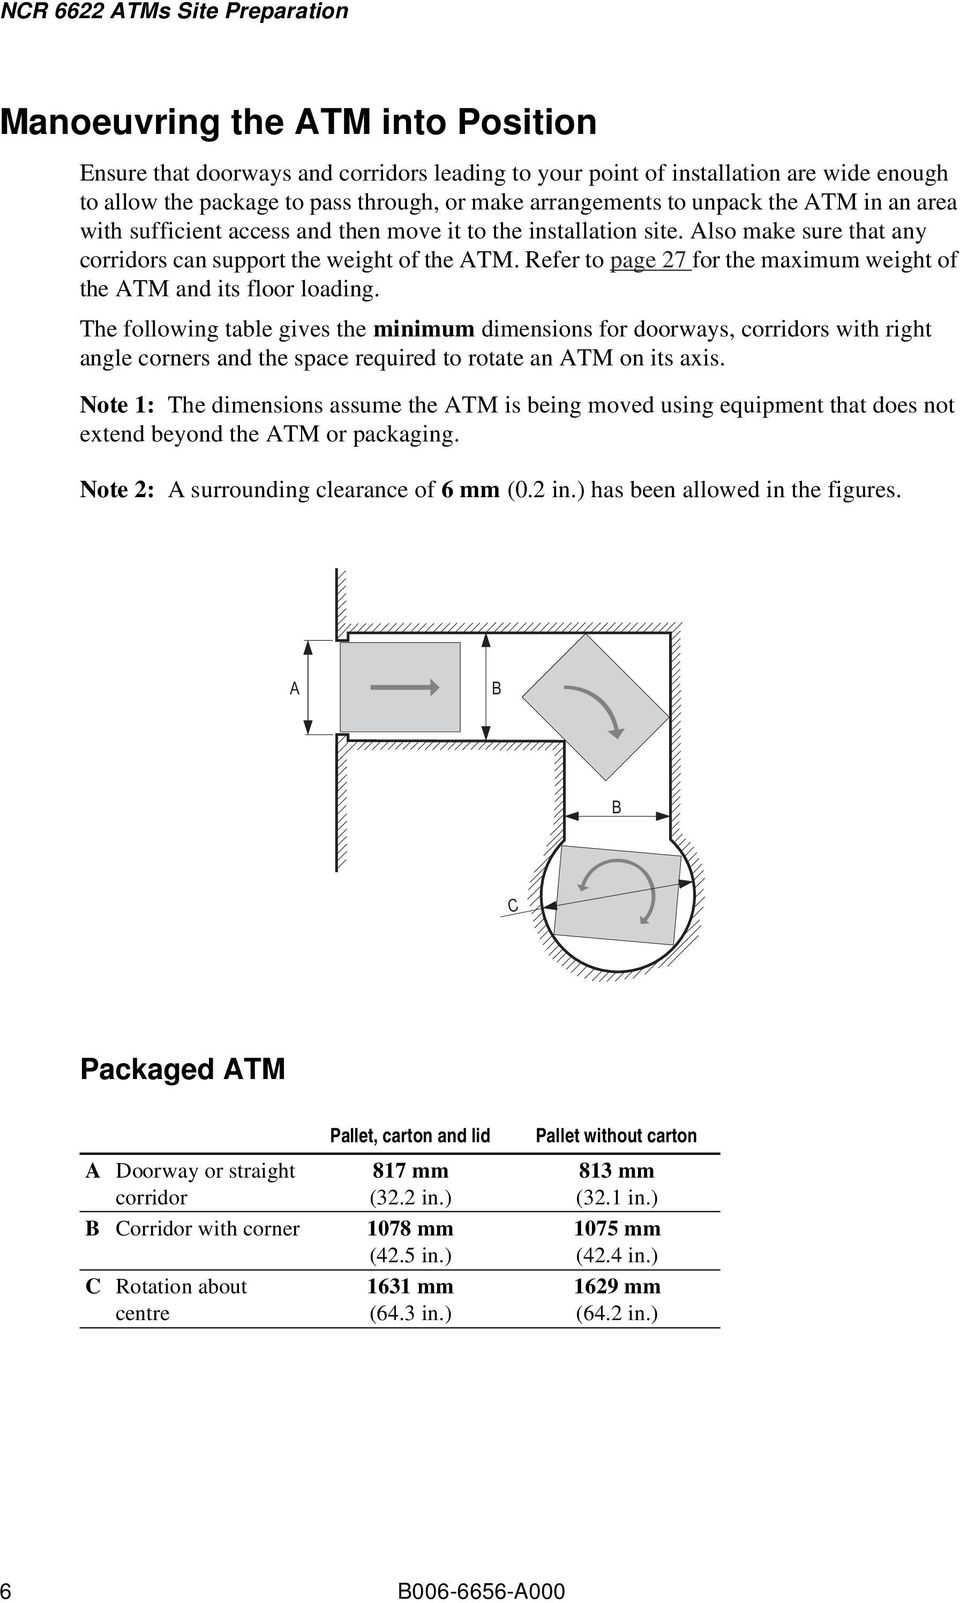 Refer to page 27 for the maximum weight of the TM and its floor loading.